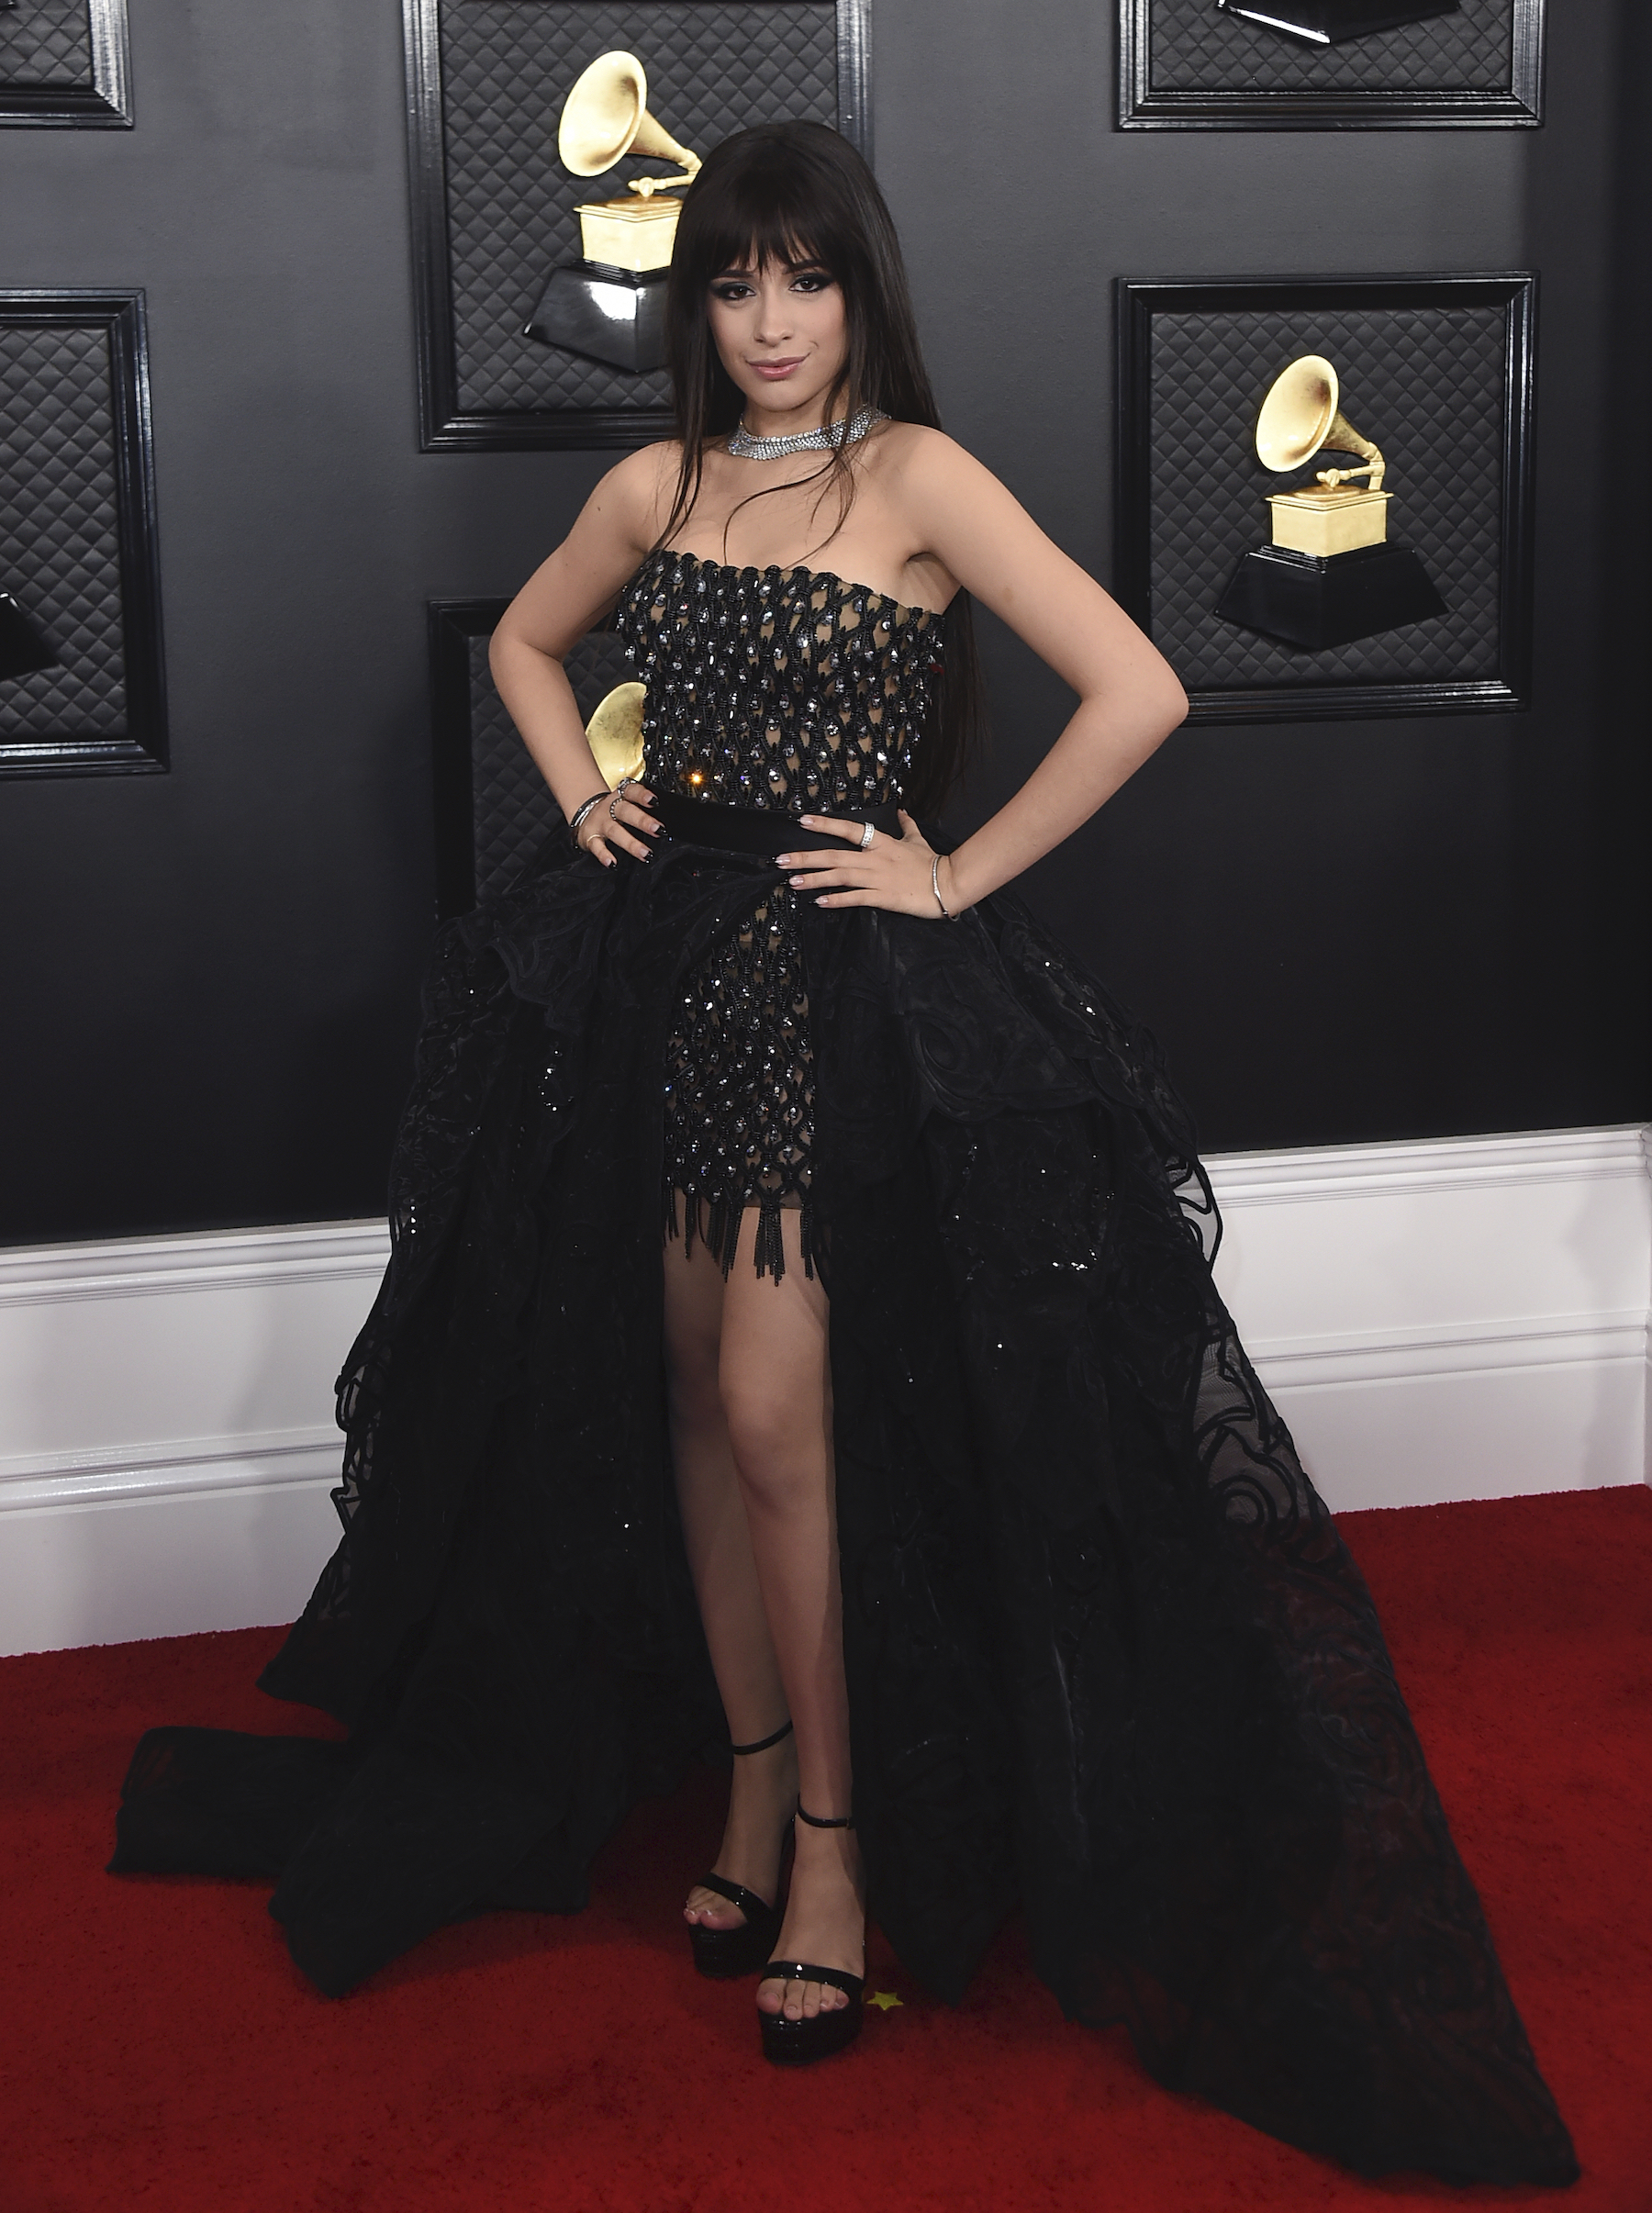 grammys red carpet 2020 see what the stars are wearing on music s biggest night abc7 chicago grammys red carpet 2020 see what the stars are wearing on music s biggest night abc7 chicago